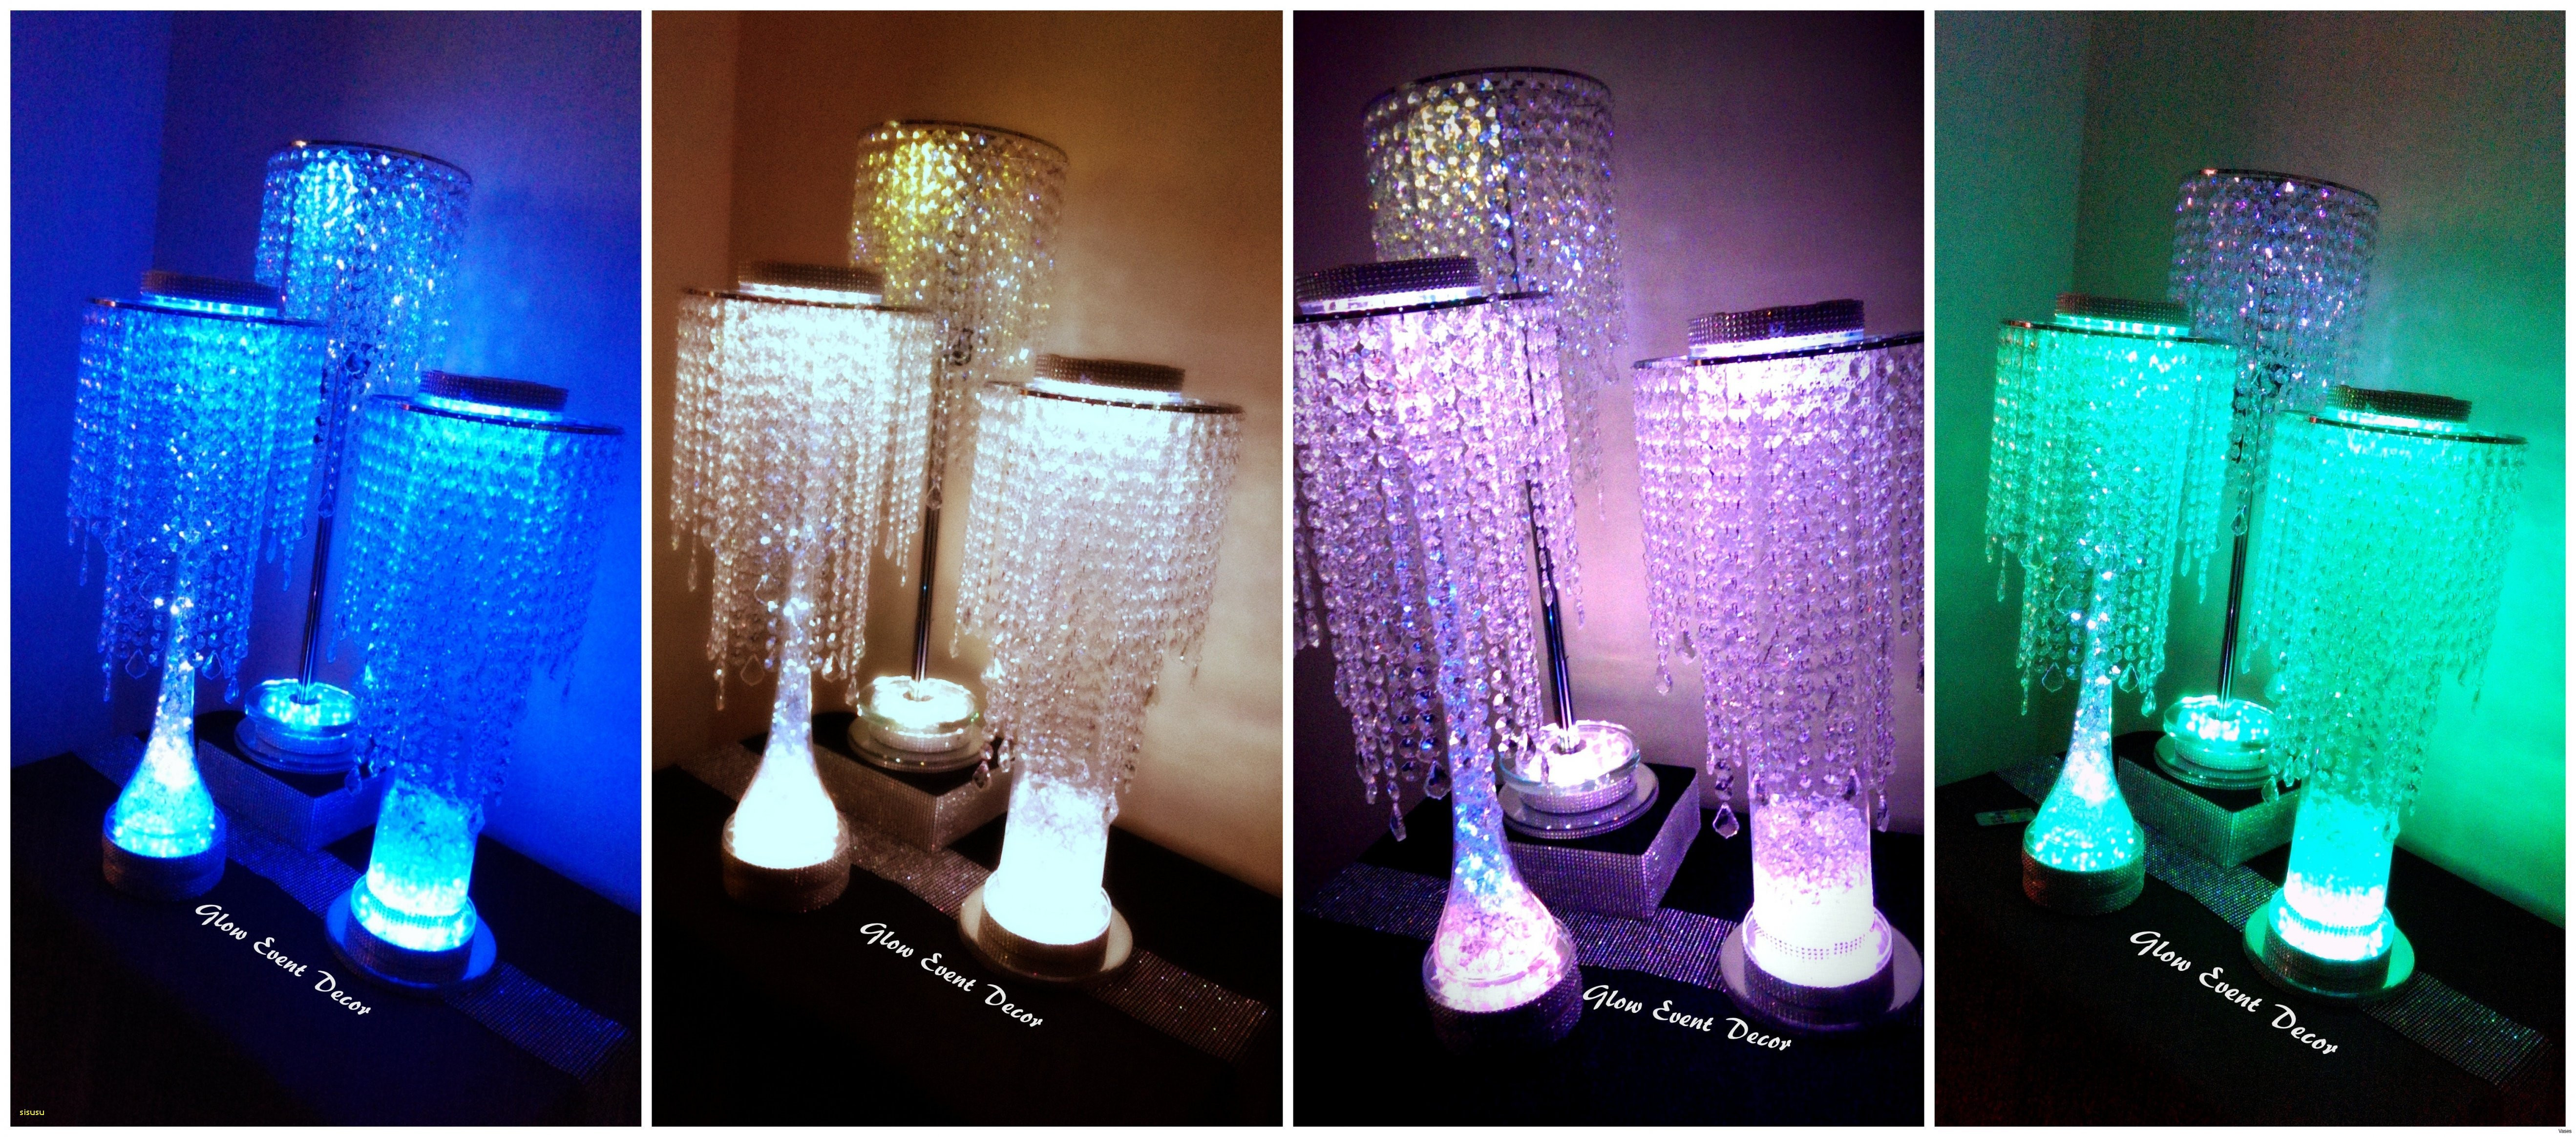 decorative crystal vases of awesome beach themed lighting best landscaping ideas within crystal tower floor lamp luxury vases decorative lights for decorationi 0d crystal tower floor lamp